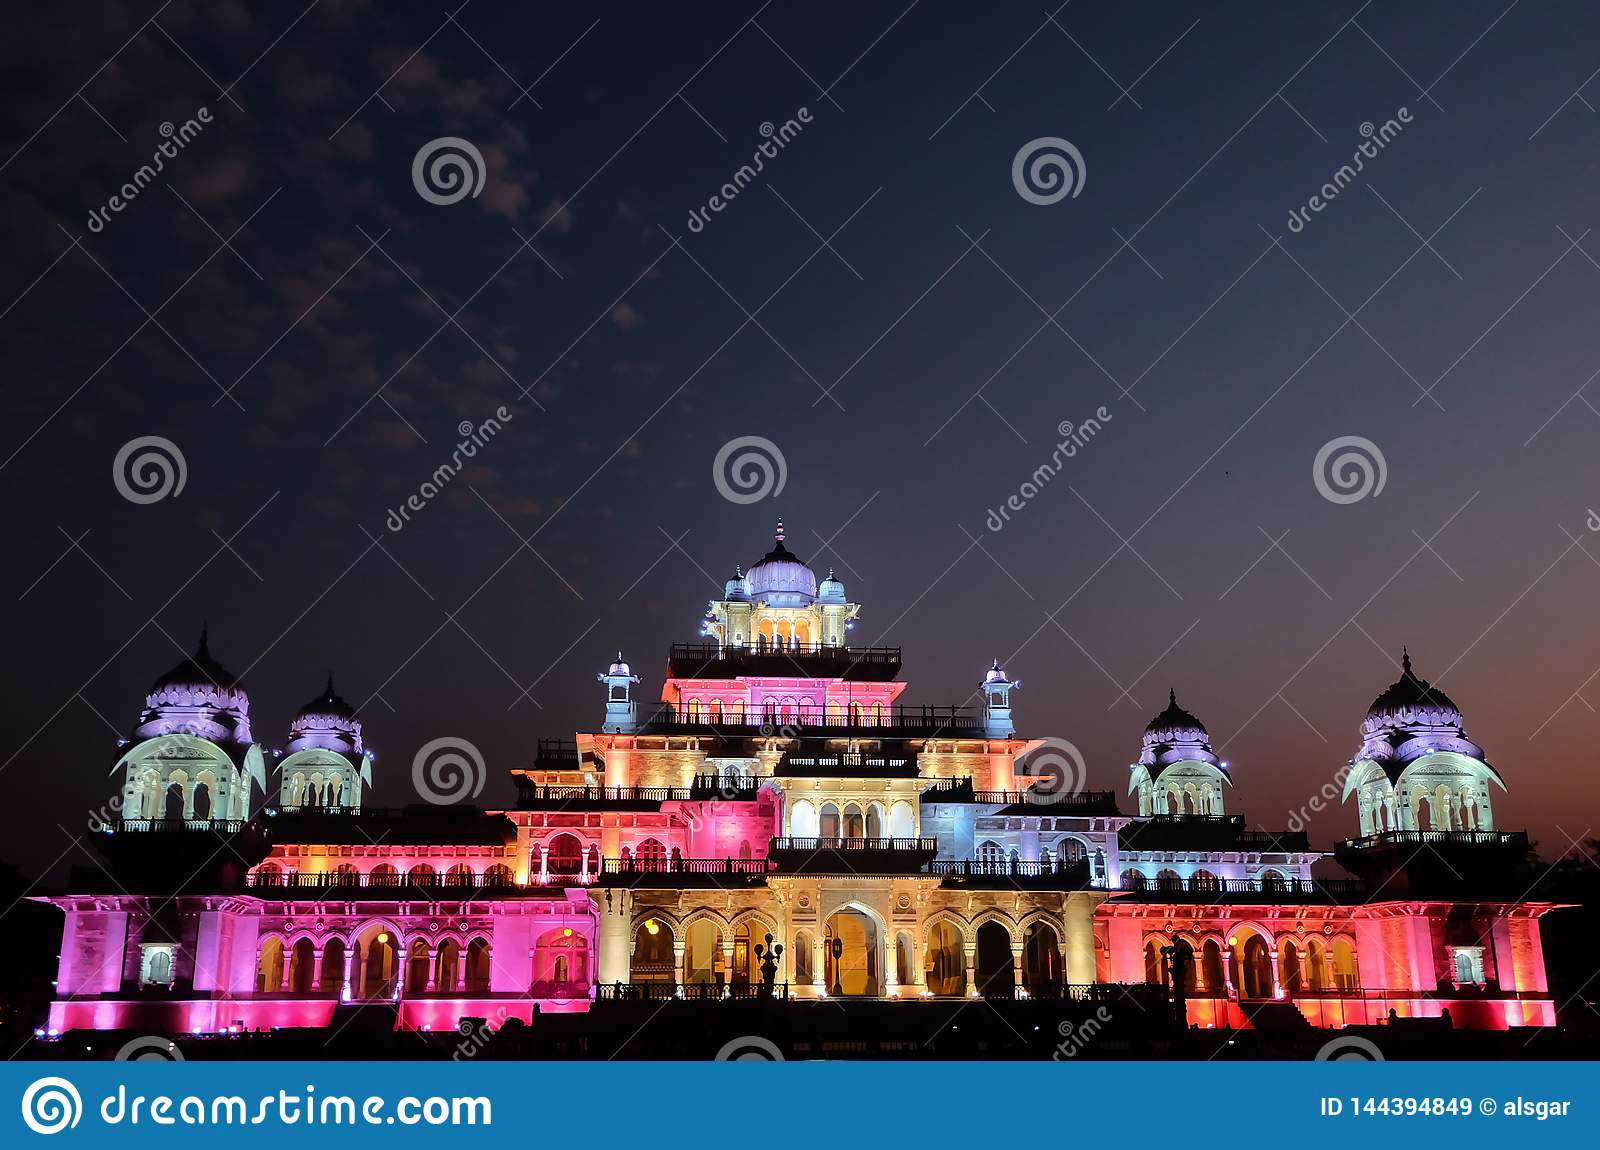 Jaipur`s Albert Hall Museum at Night